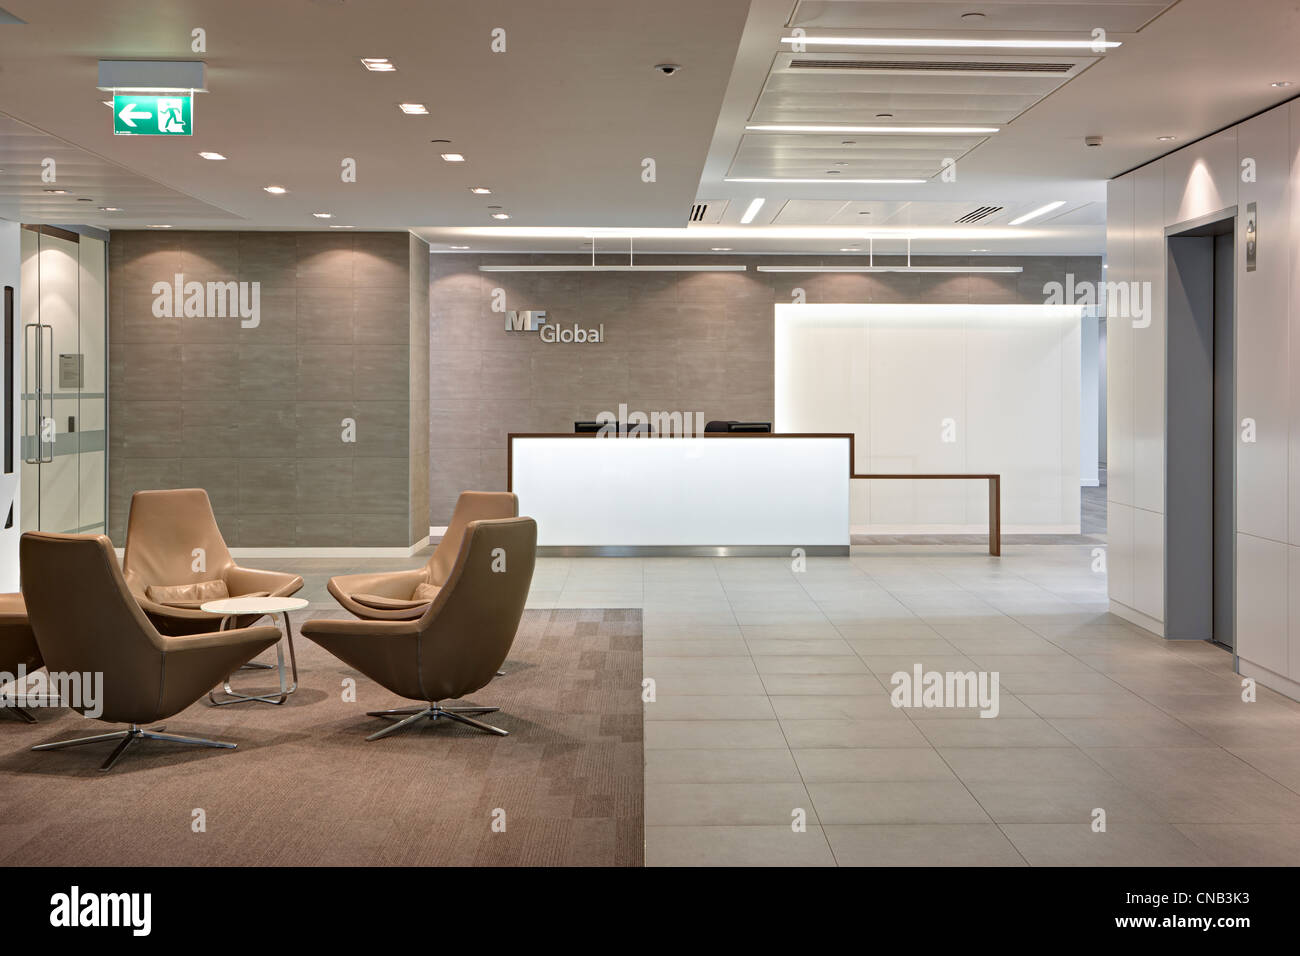 bank reception lift chairs waiting room - Stock Image